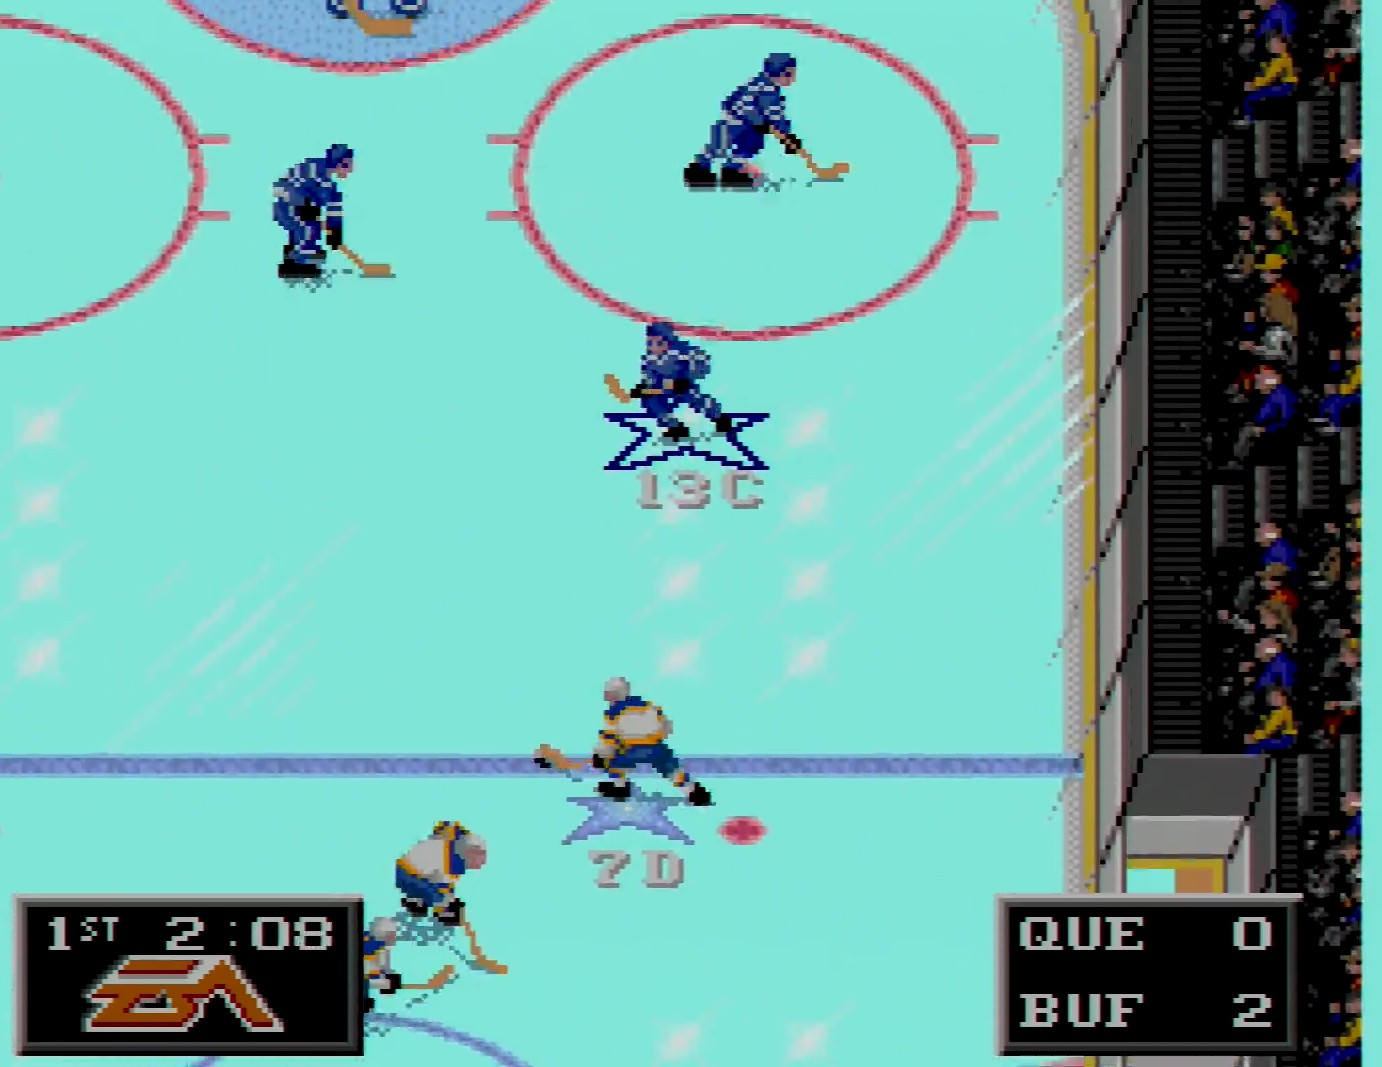 Will fondly remembered sports games like NHL '94 fade into obscurity if they can't be re-released?